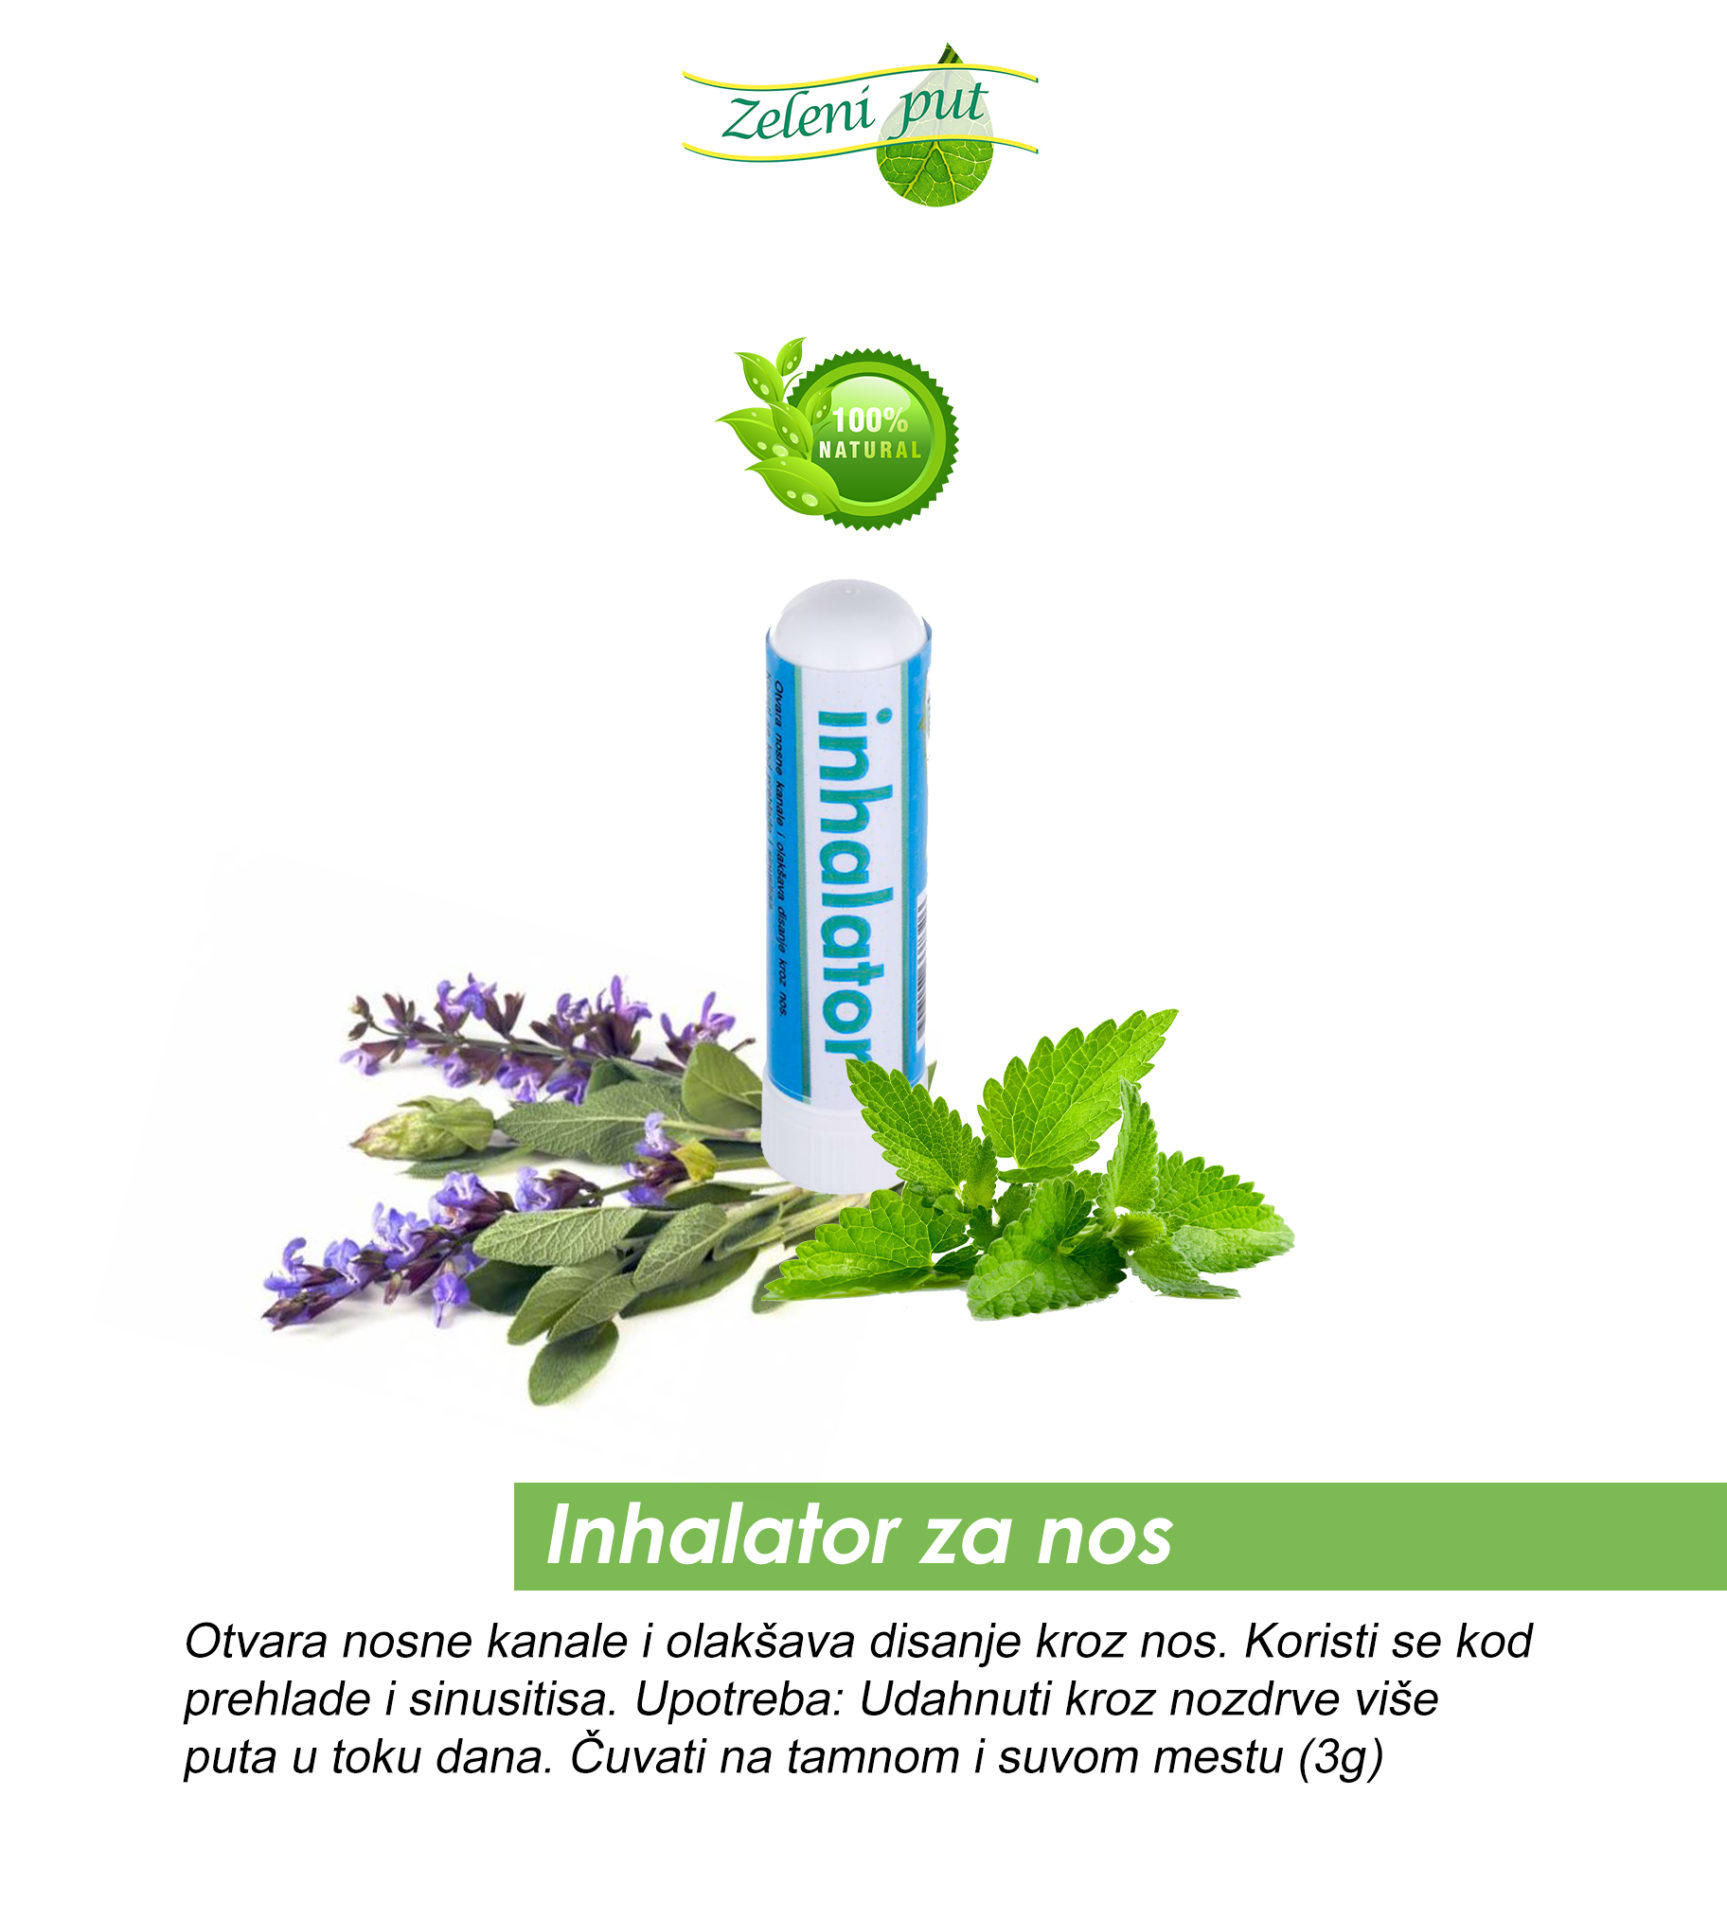 Inhalator za nos